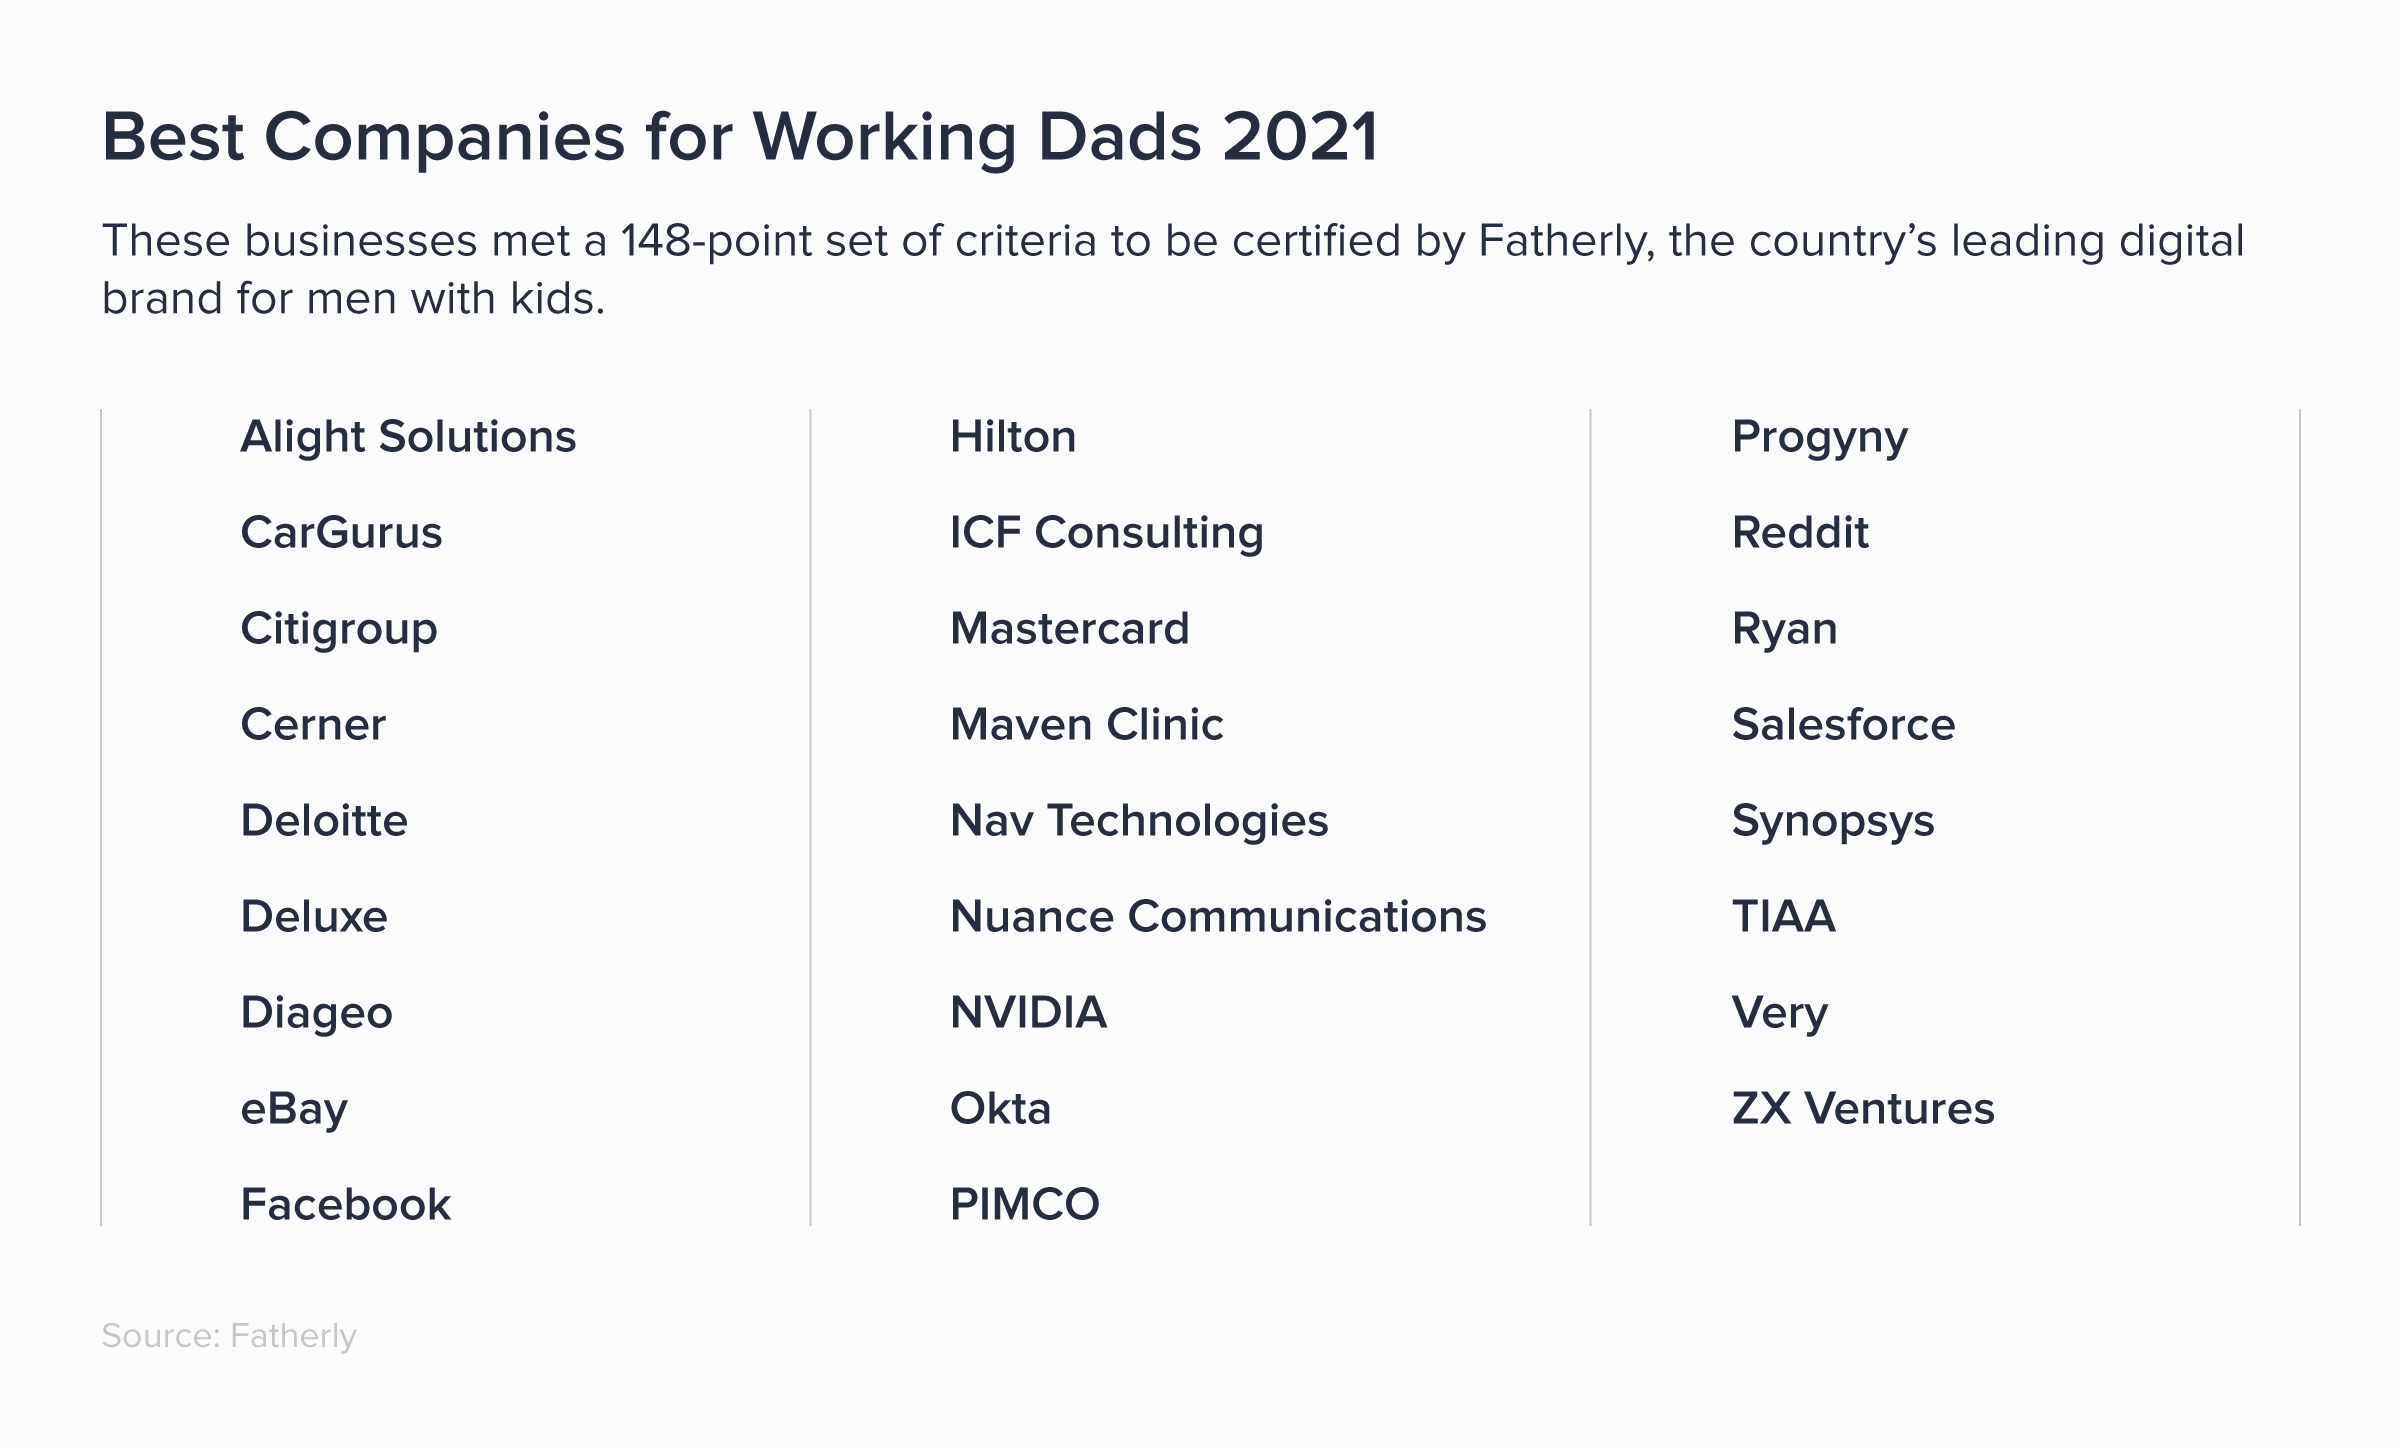 Best Companies for Working Dads 2021. These businesses met a 148-point set of criteria to be certified by Fatherly.